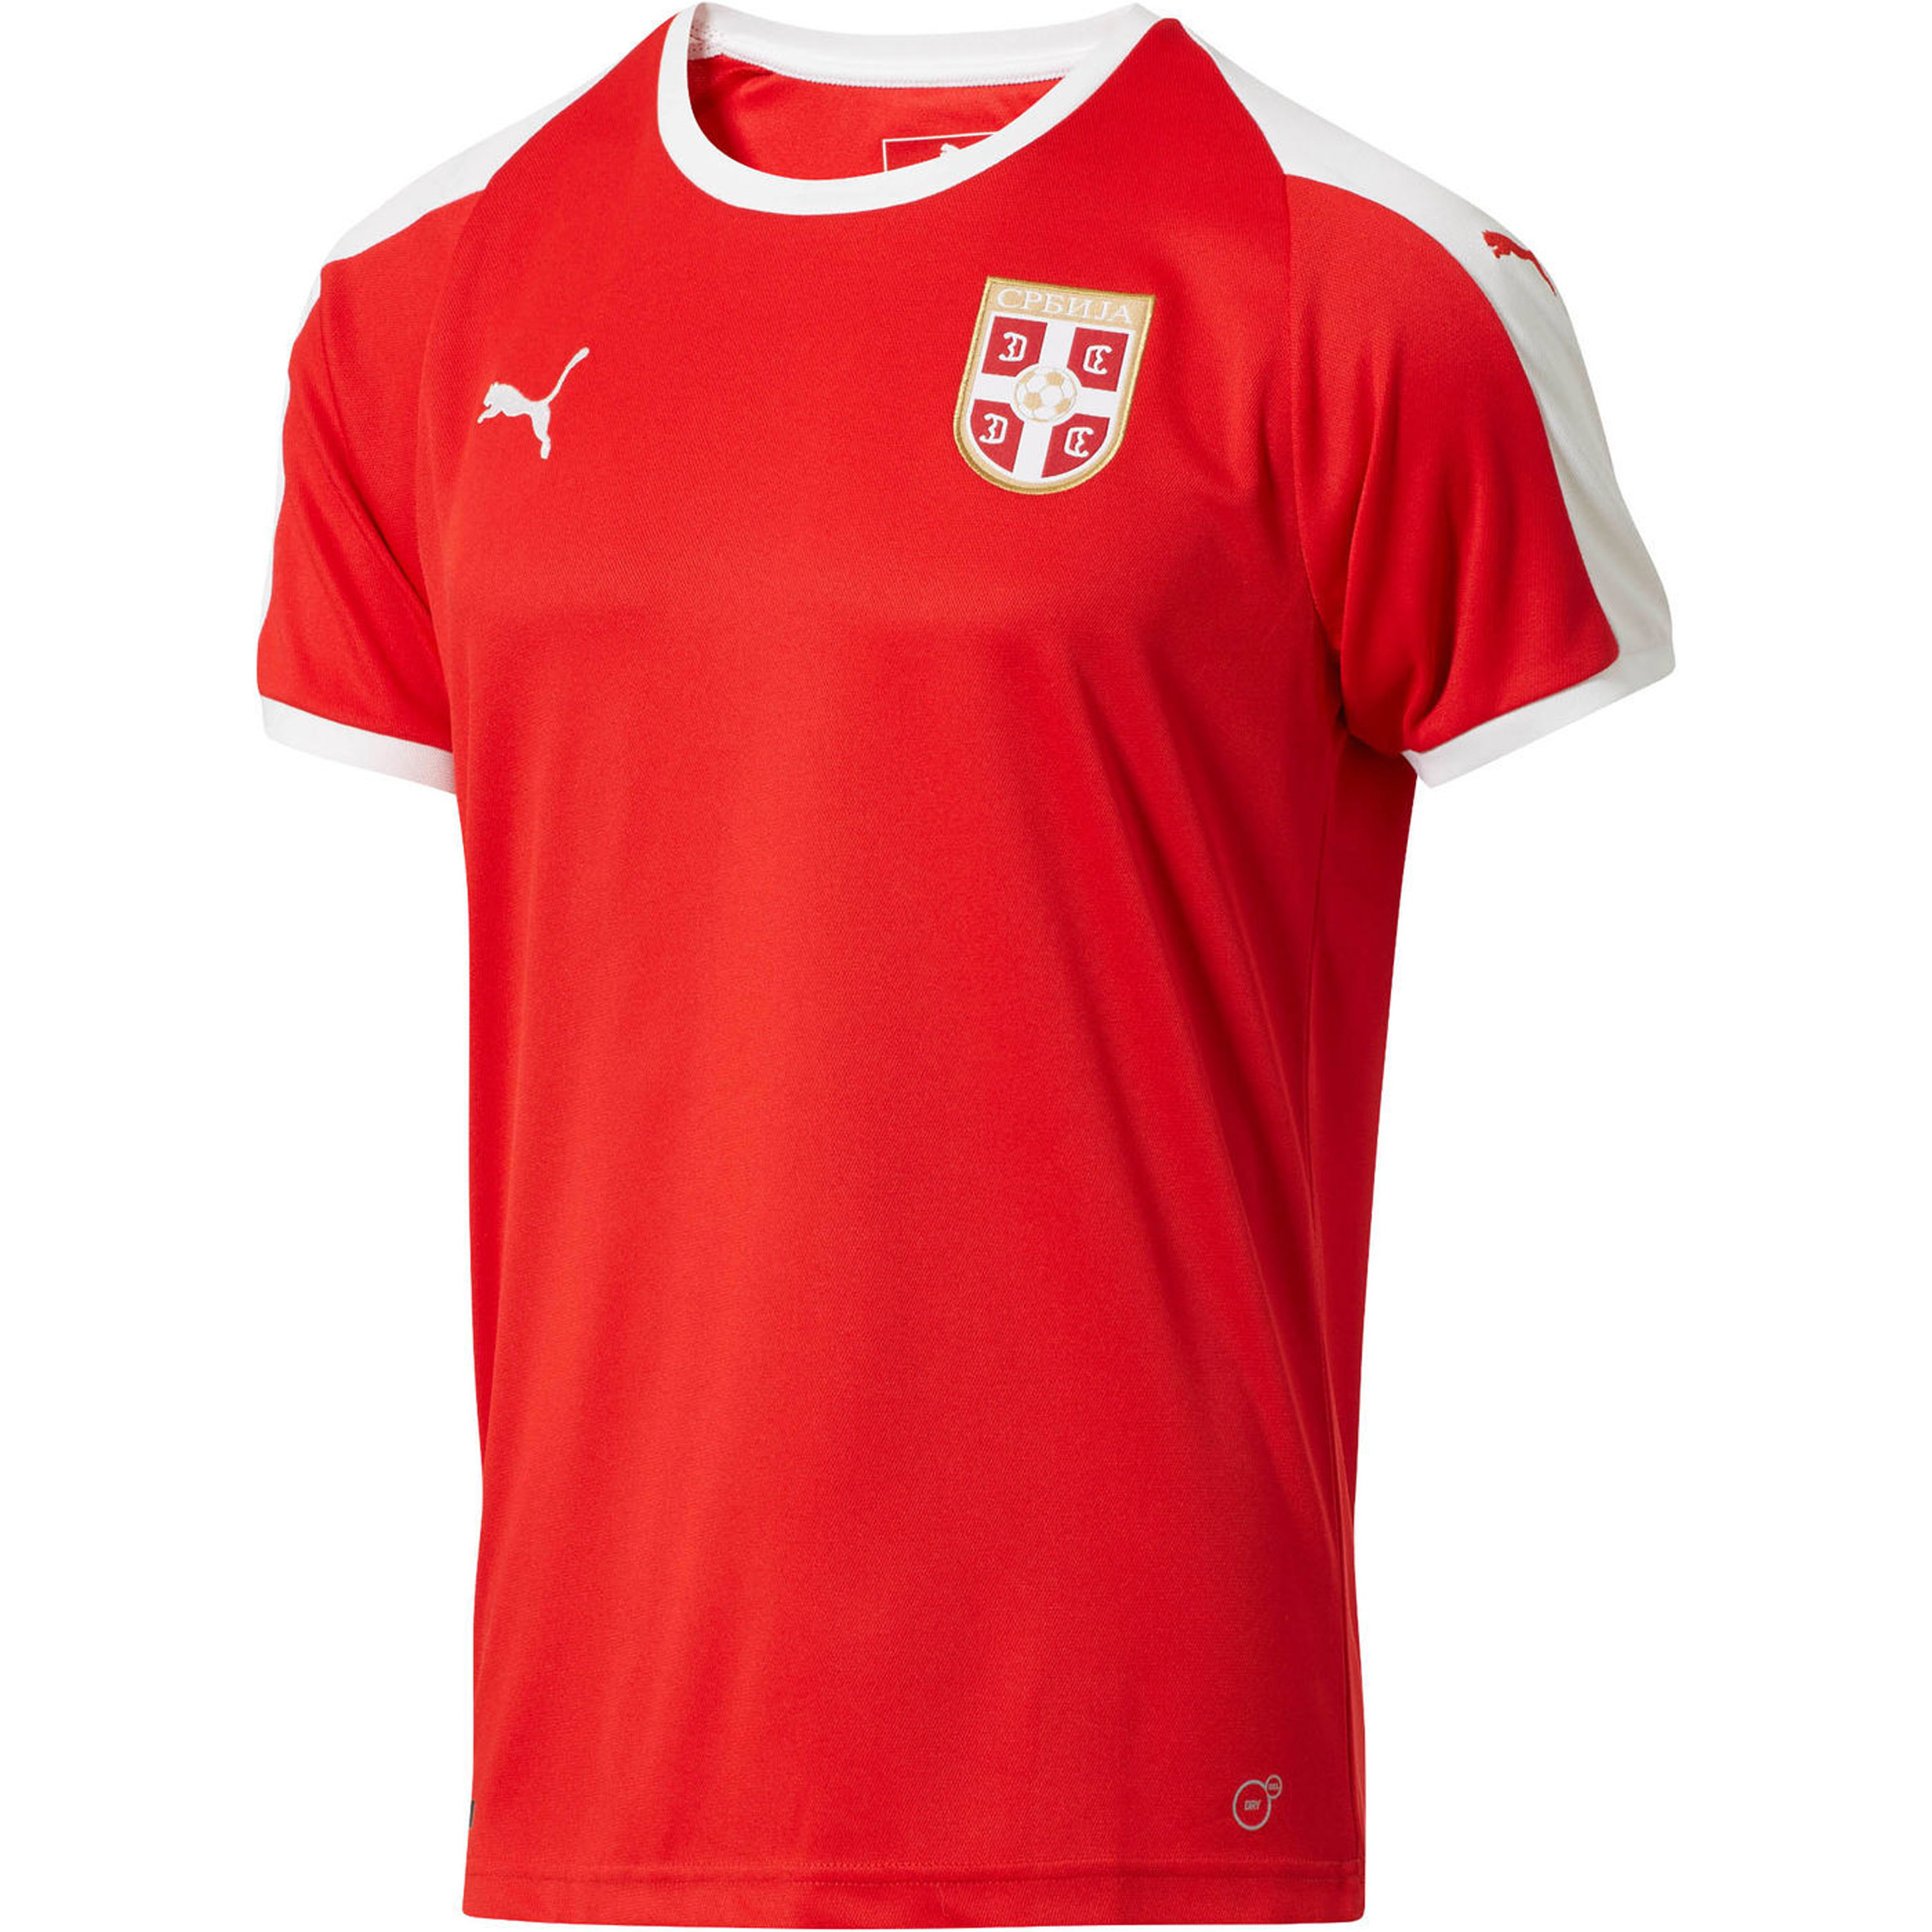 af193fed3 Costa Rica s traditionally red and white kit was released under the slogan